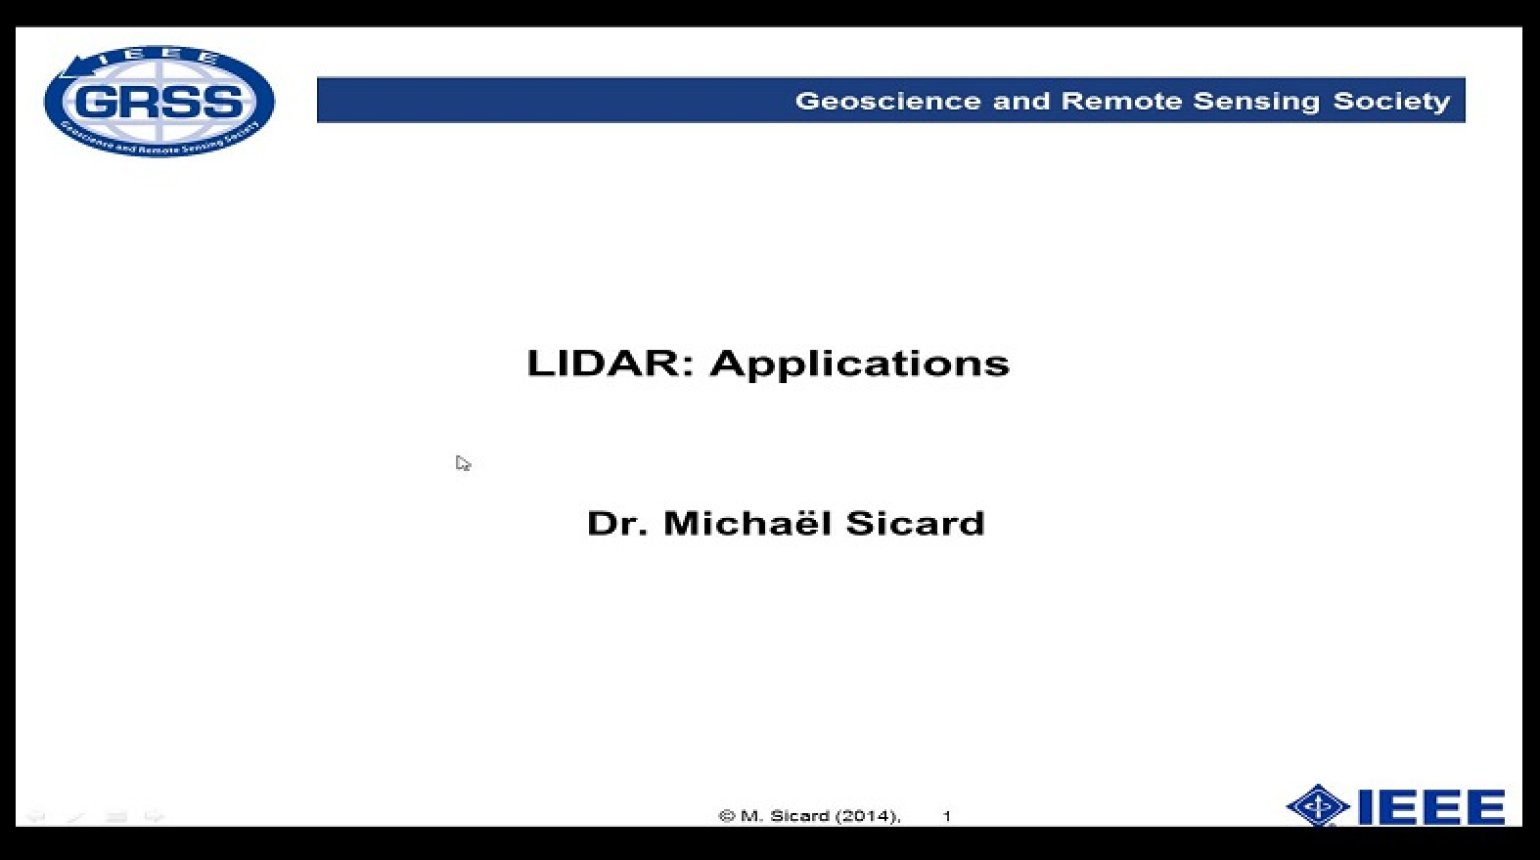 LIDAR: Applications